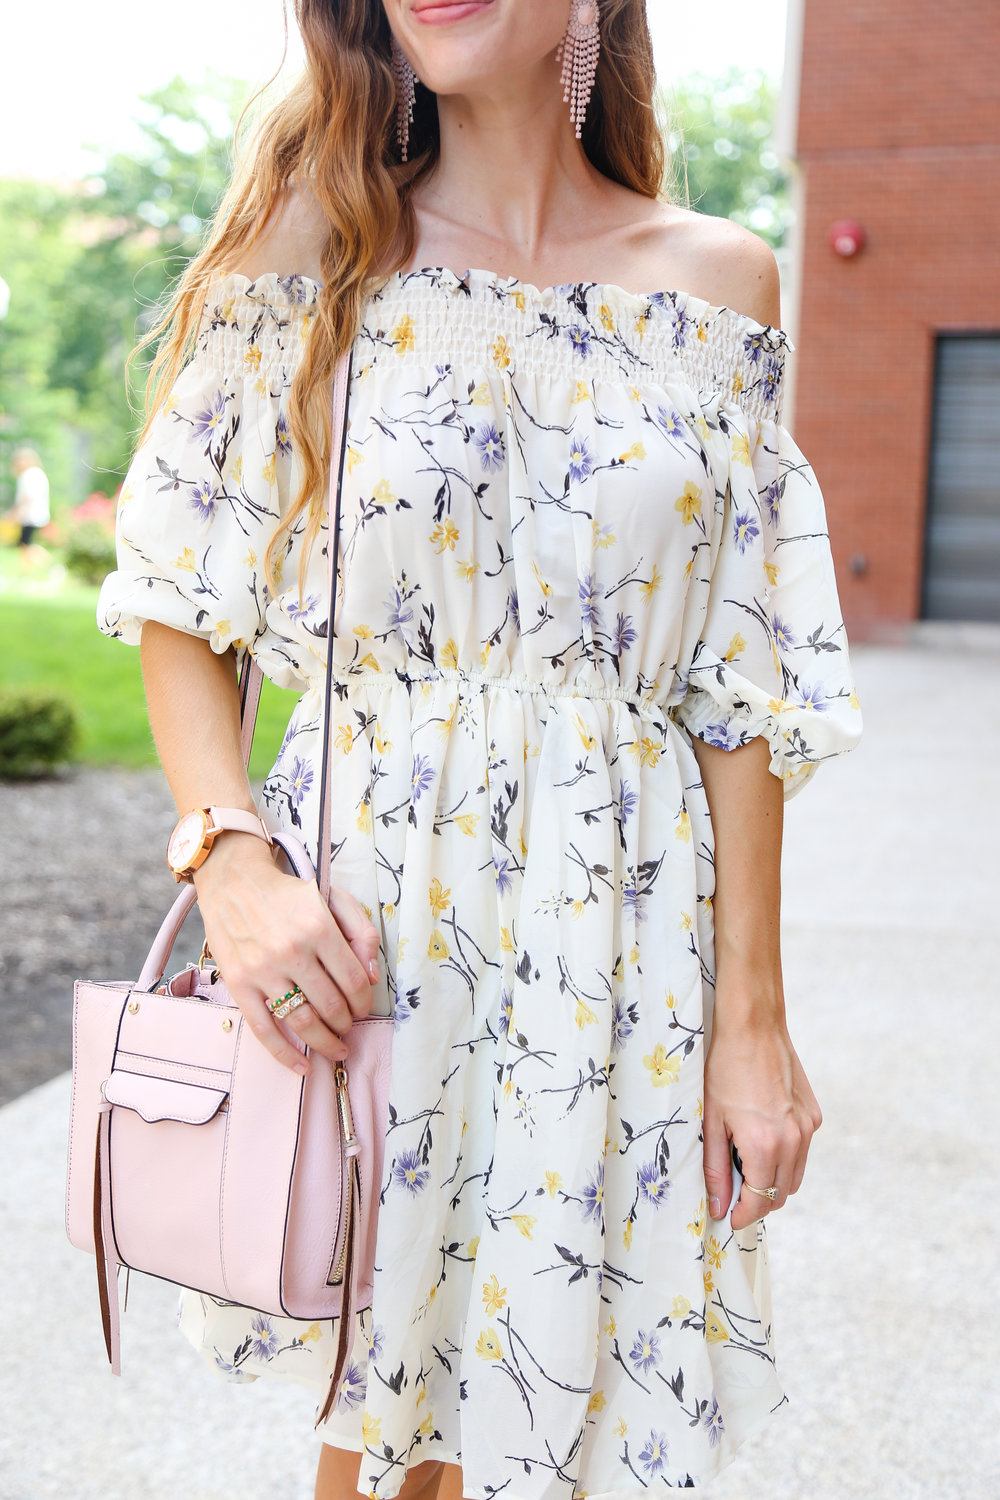 Off The Shoulder Floral Print- Enchanting Elegance